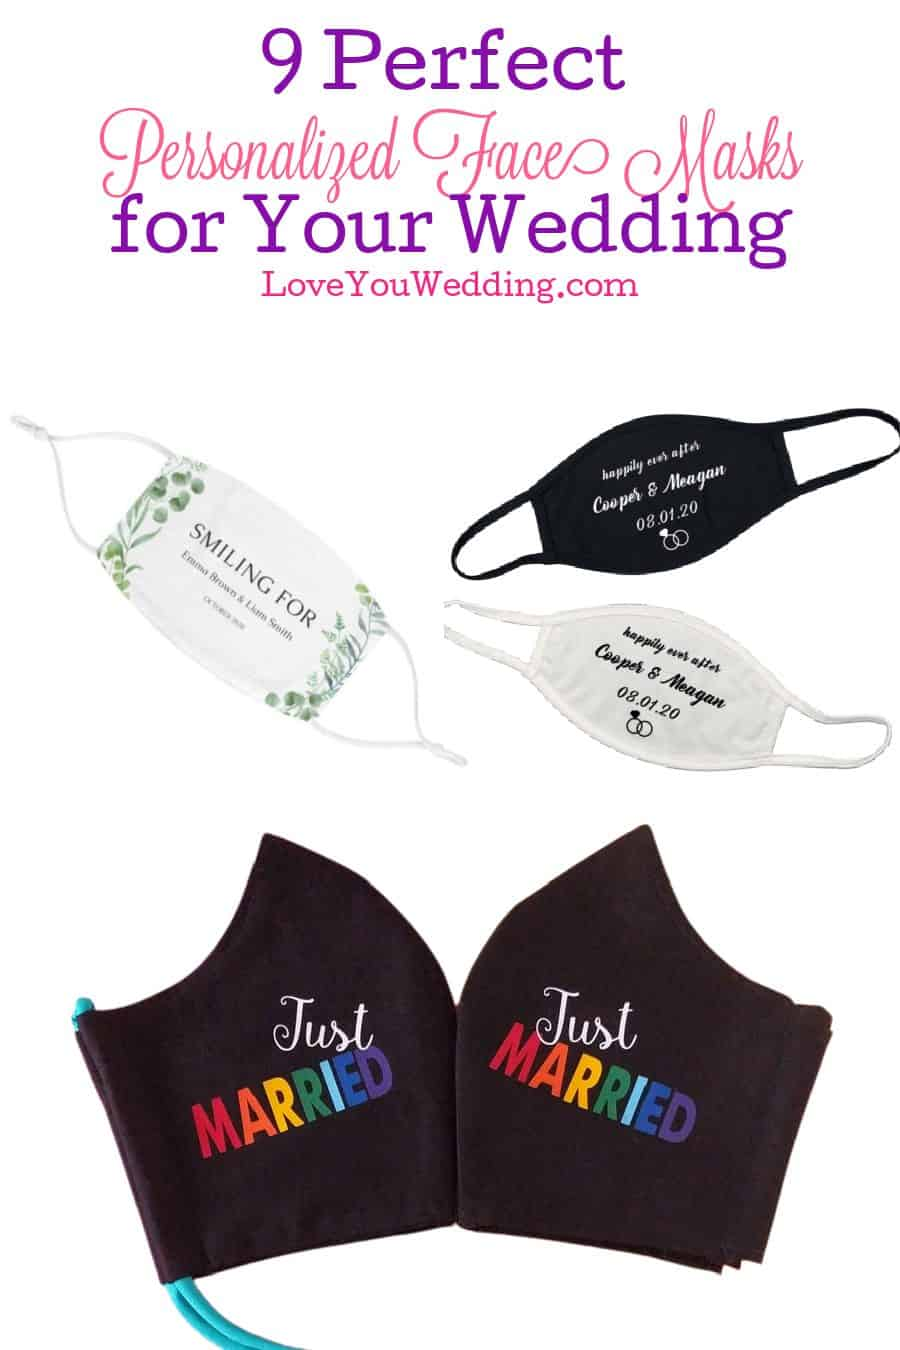 Finding the best personalized face masks for weddings isn't easy, so we put together a list of our favorites for you. Take a look!